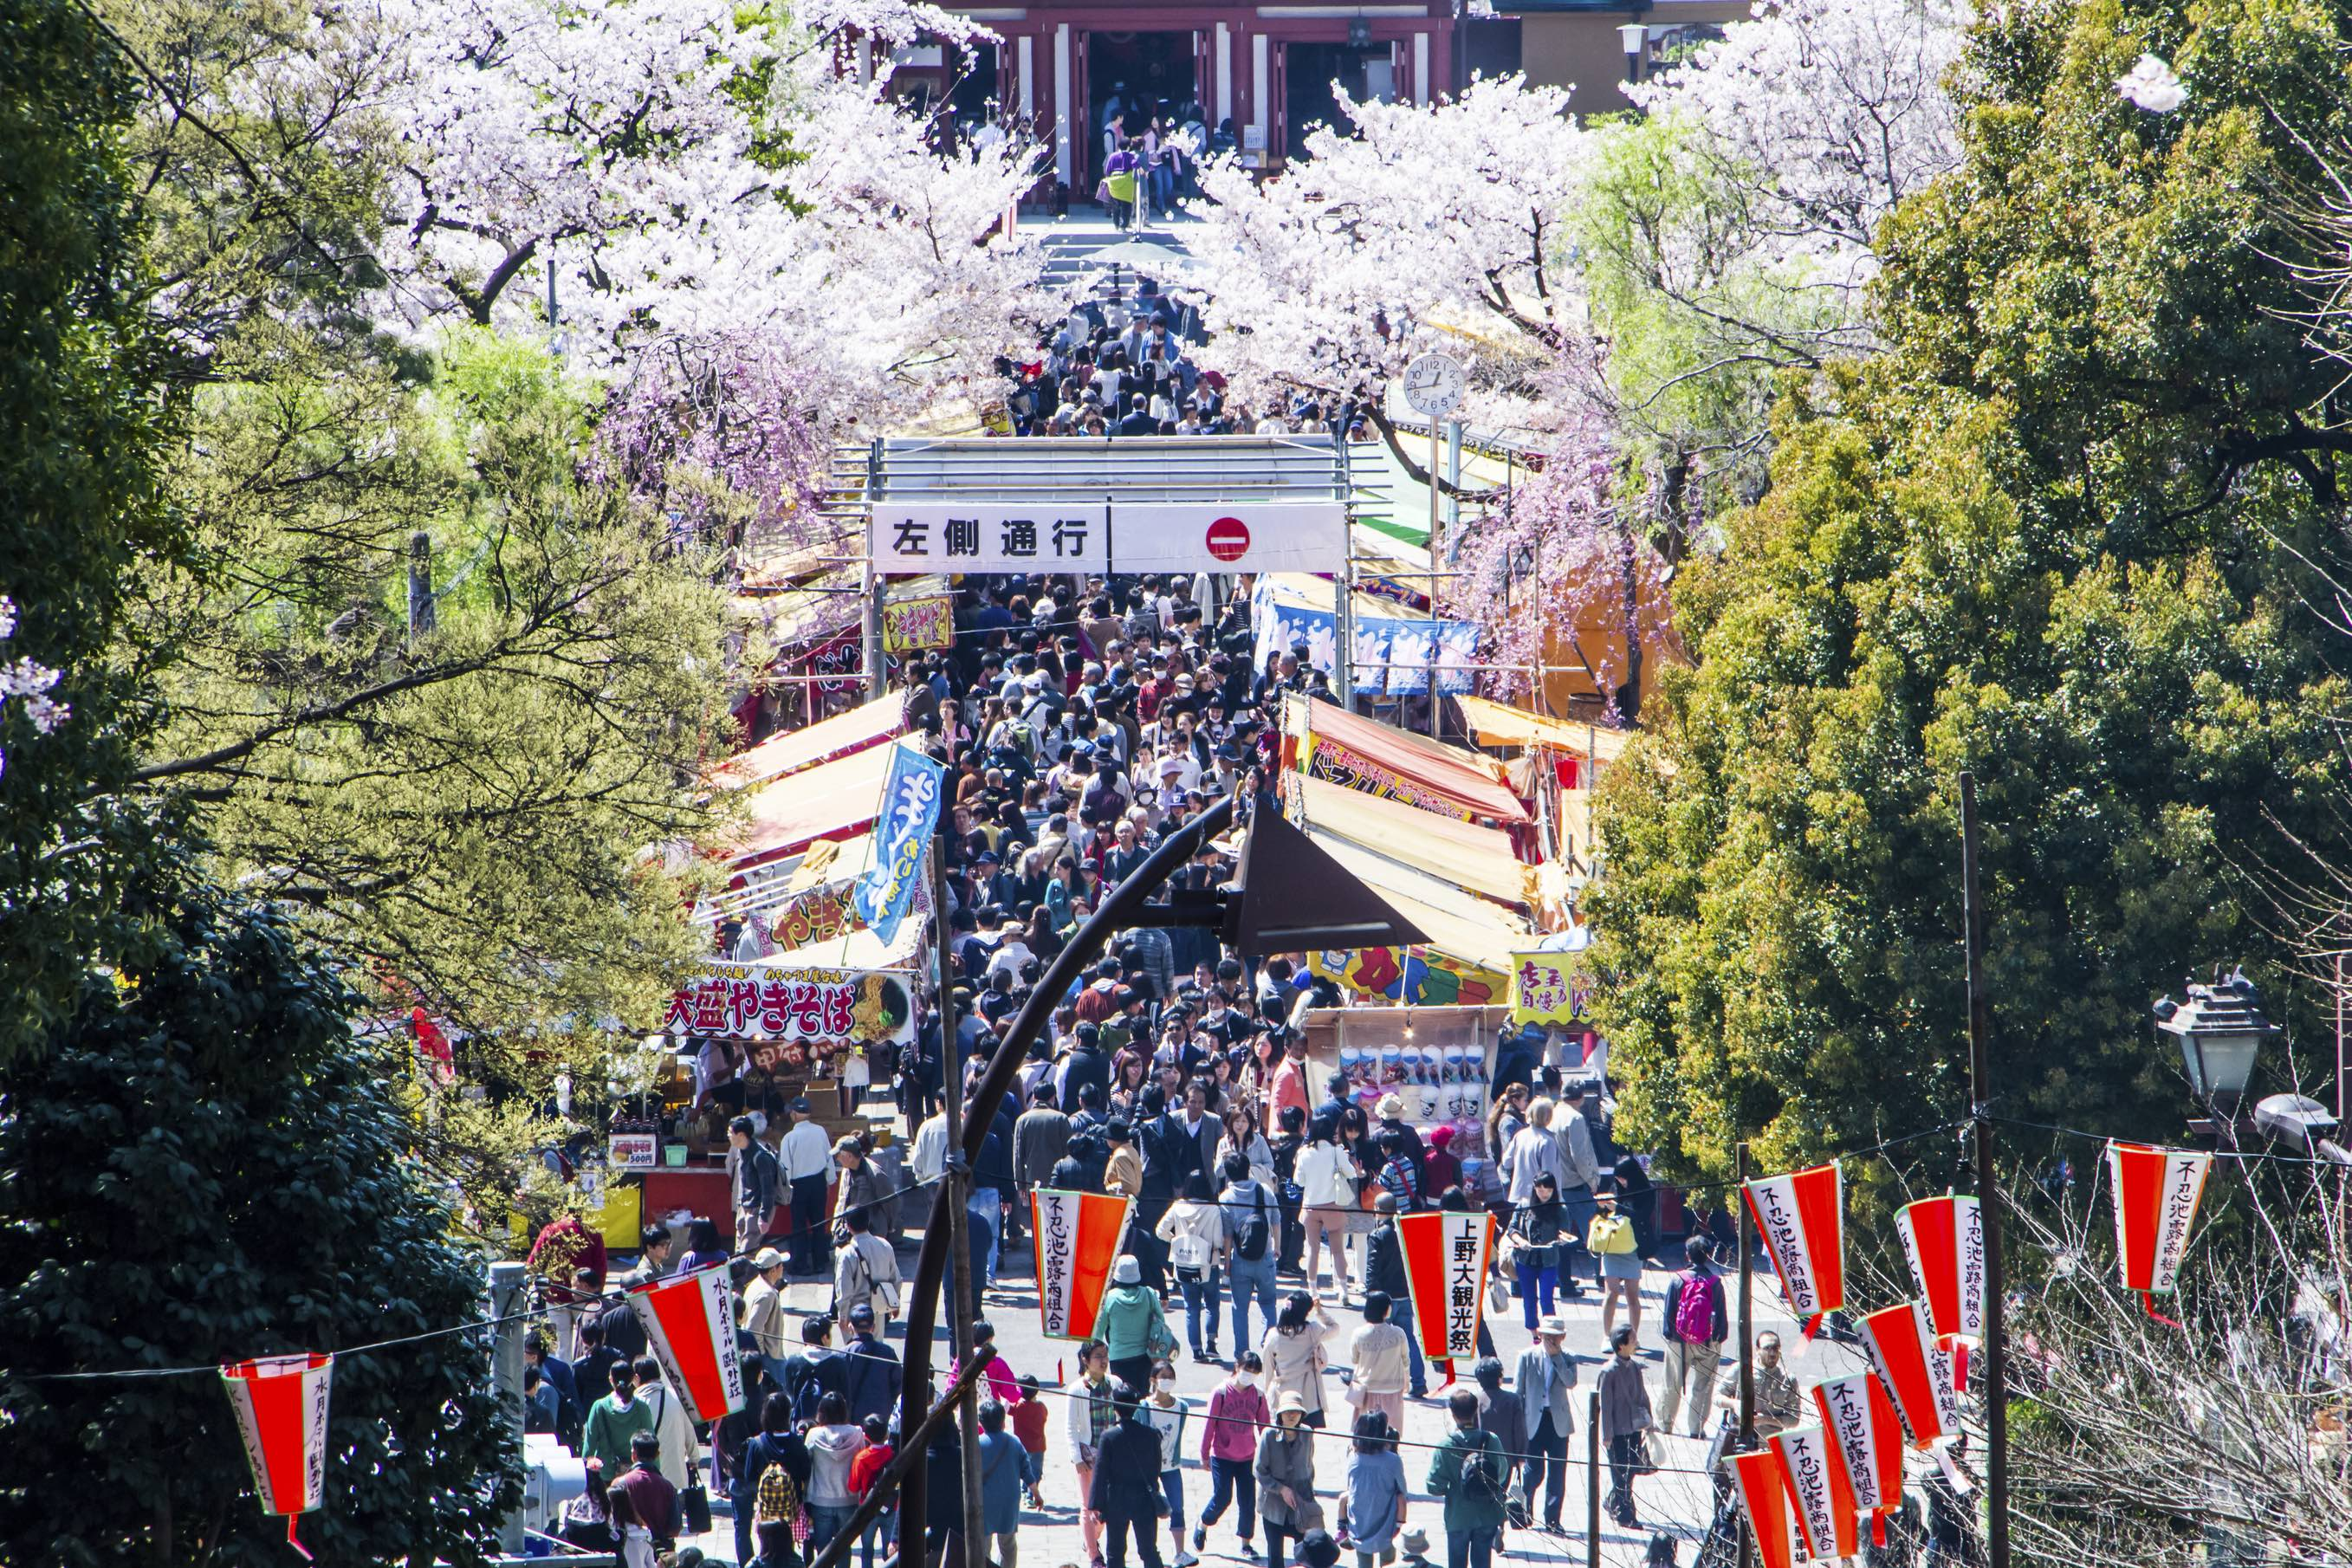 Ueno Park is one of the most popular places in the city for hanami, or cherry blossom viewing,